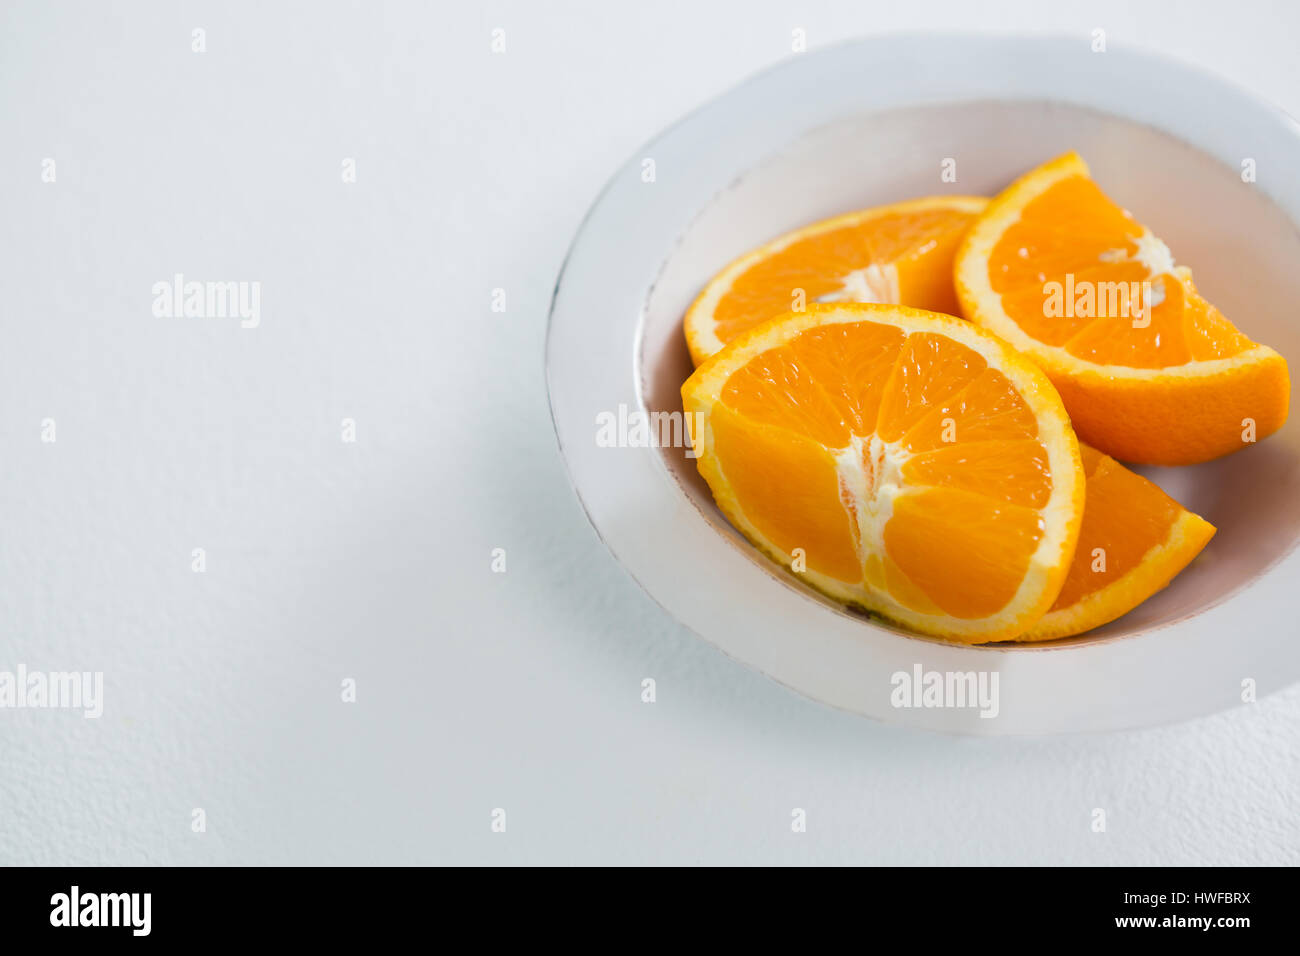 Close-up of oranges slices in bowl on white background - Stock Image